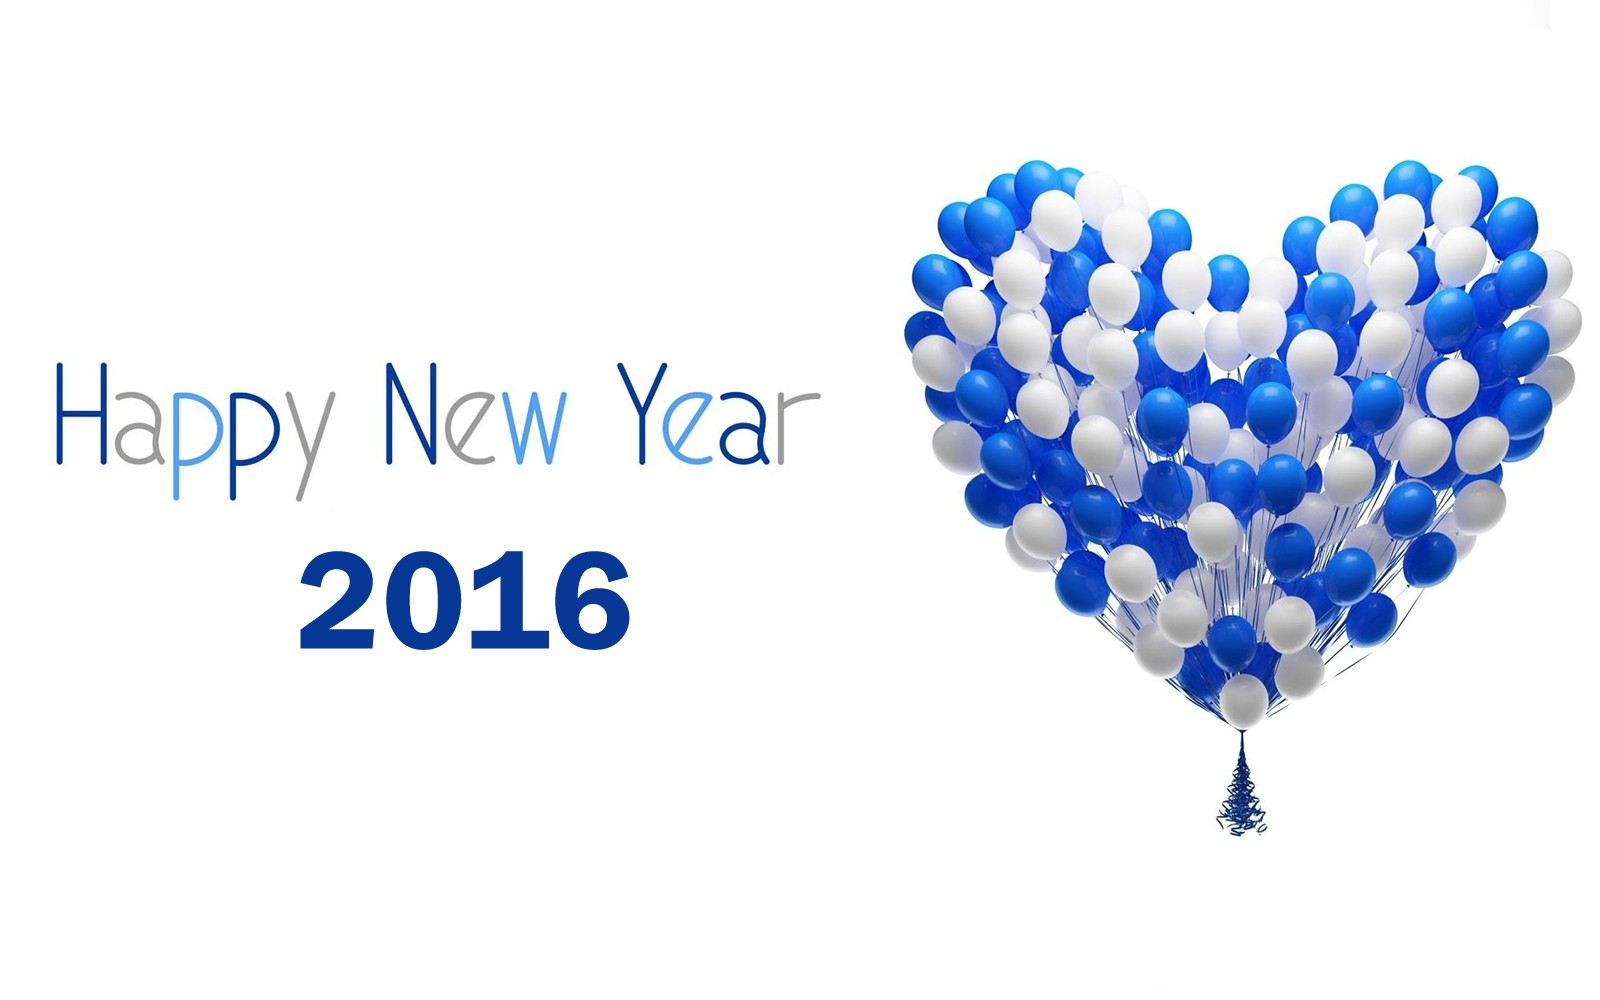 happy new year 2016 blue and white heart balloons picture